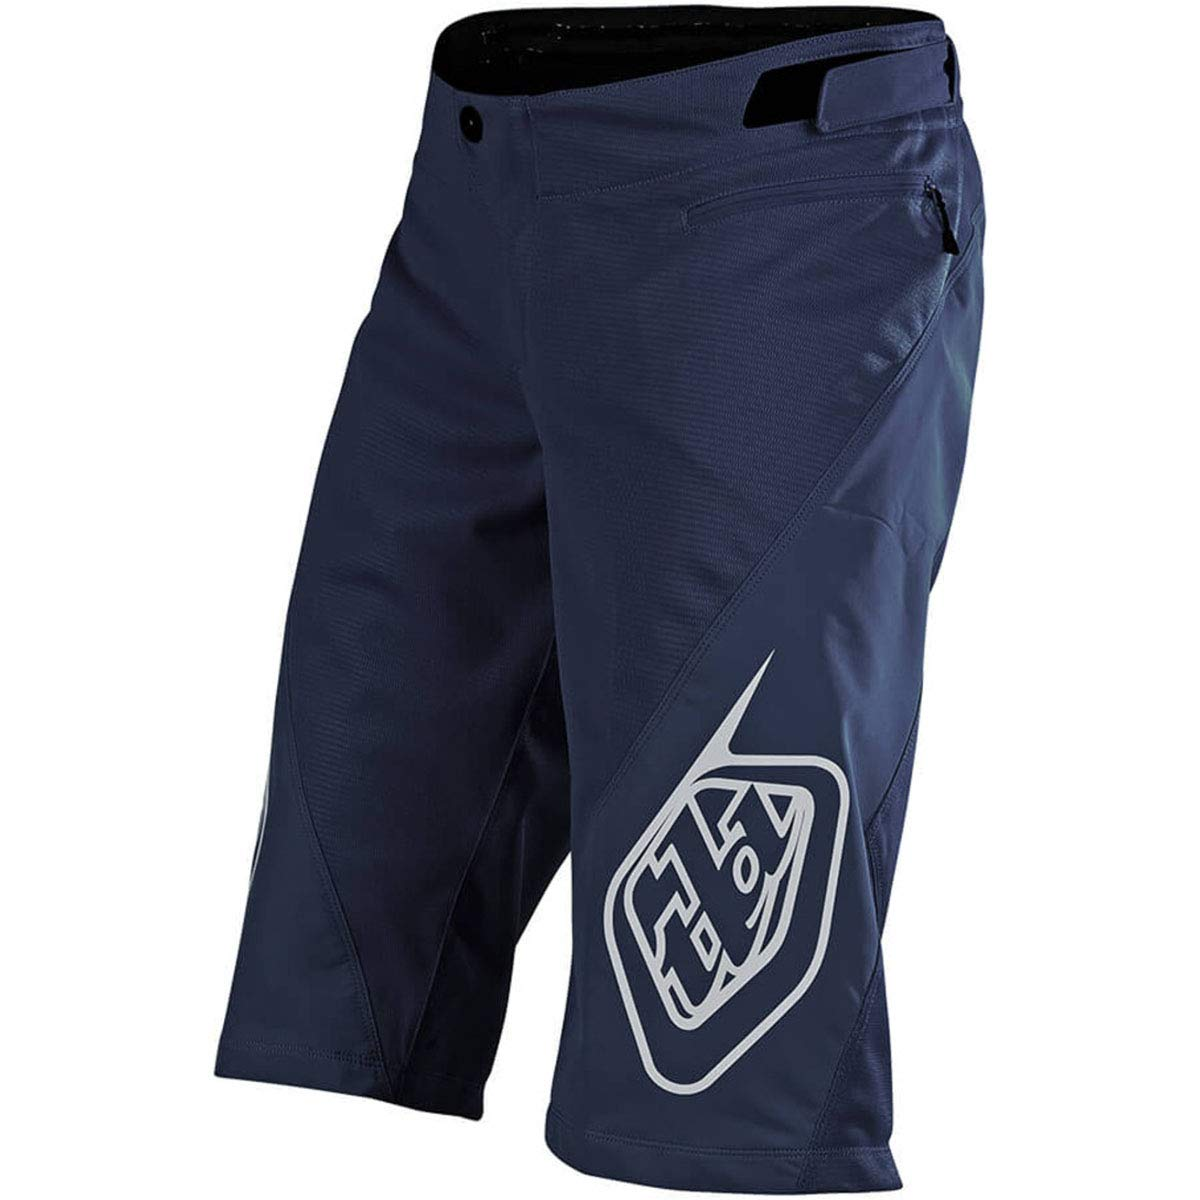 Troy Lee Designs Sprint Shorts - Boys' Solid Navy, 26 by Troy Lee Designs